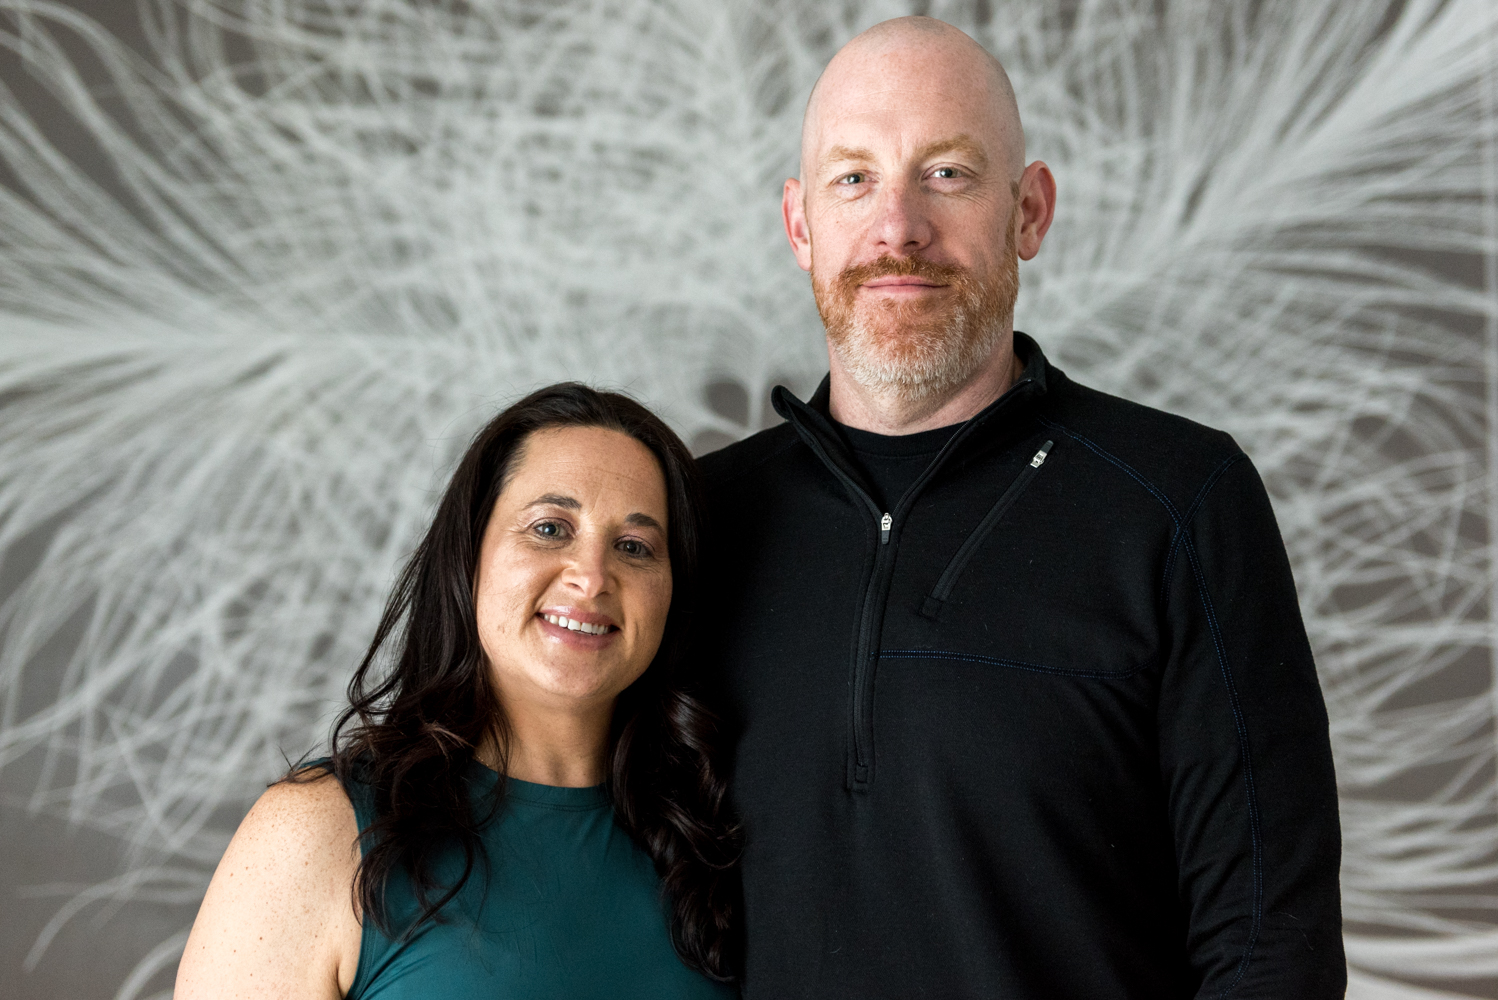 What does JMD stand for? - JMD Wellness Yoga Studio was developed by Jeff and Jill Dahler. Our dream was to open a wellness studio focused on total wellness solutions through breath, movement and meditation.JMD stands for Jill Marie Dahler and Jeffery Michael Dahler. Isn't that cute?Our wellness journey began years ago and we quickly discovered the importance of community and support. As we explored various types of activity and movement, we discovered they all linked back to the Build. Balance. Breathe.We invite you to our studio where you can come, just as you are, and open to vitality and power through movement, breath and connection. Through the consistent practice of yoga and meditation, we cultivate freedom, empowerment, gratitude, purpose, and growth.At JMD Wellness, we commit to embrace the suck & unlock your awesome. We guarantee real, honest wellness support.